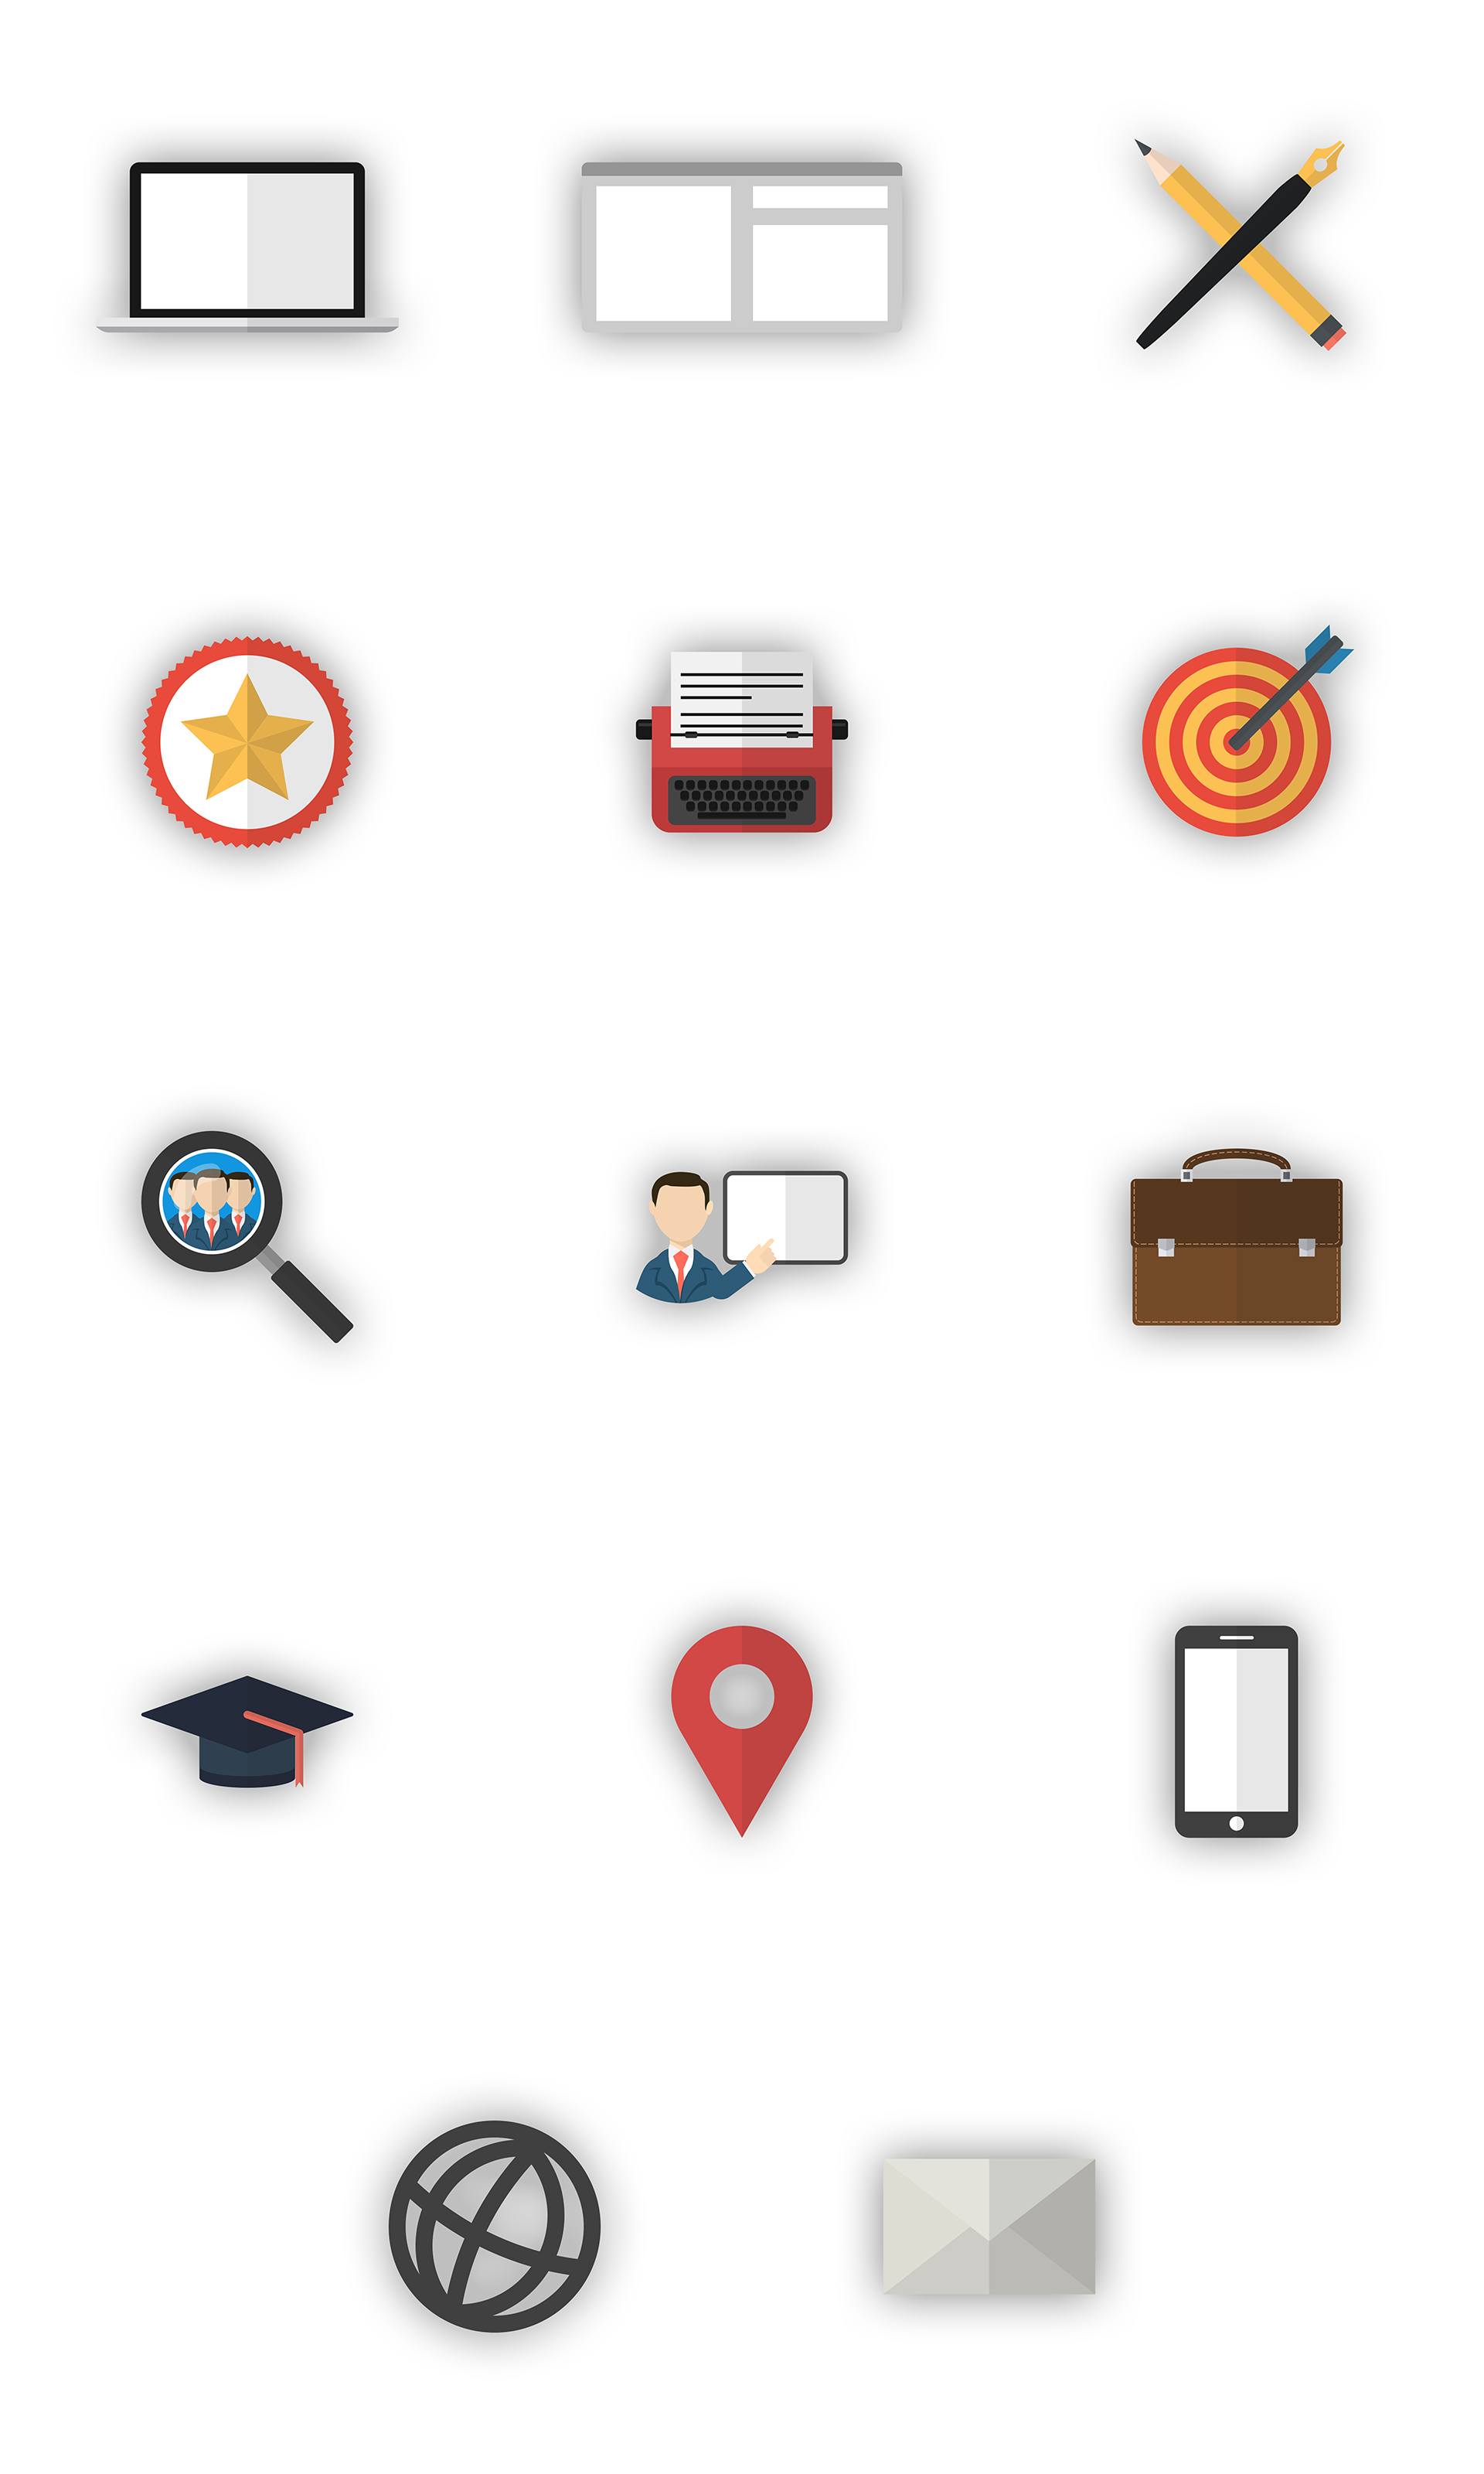 Alle icons